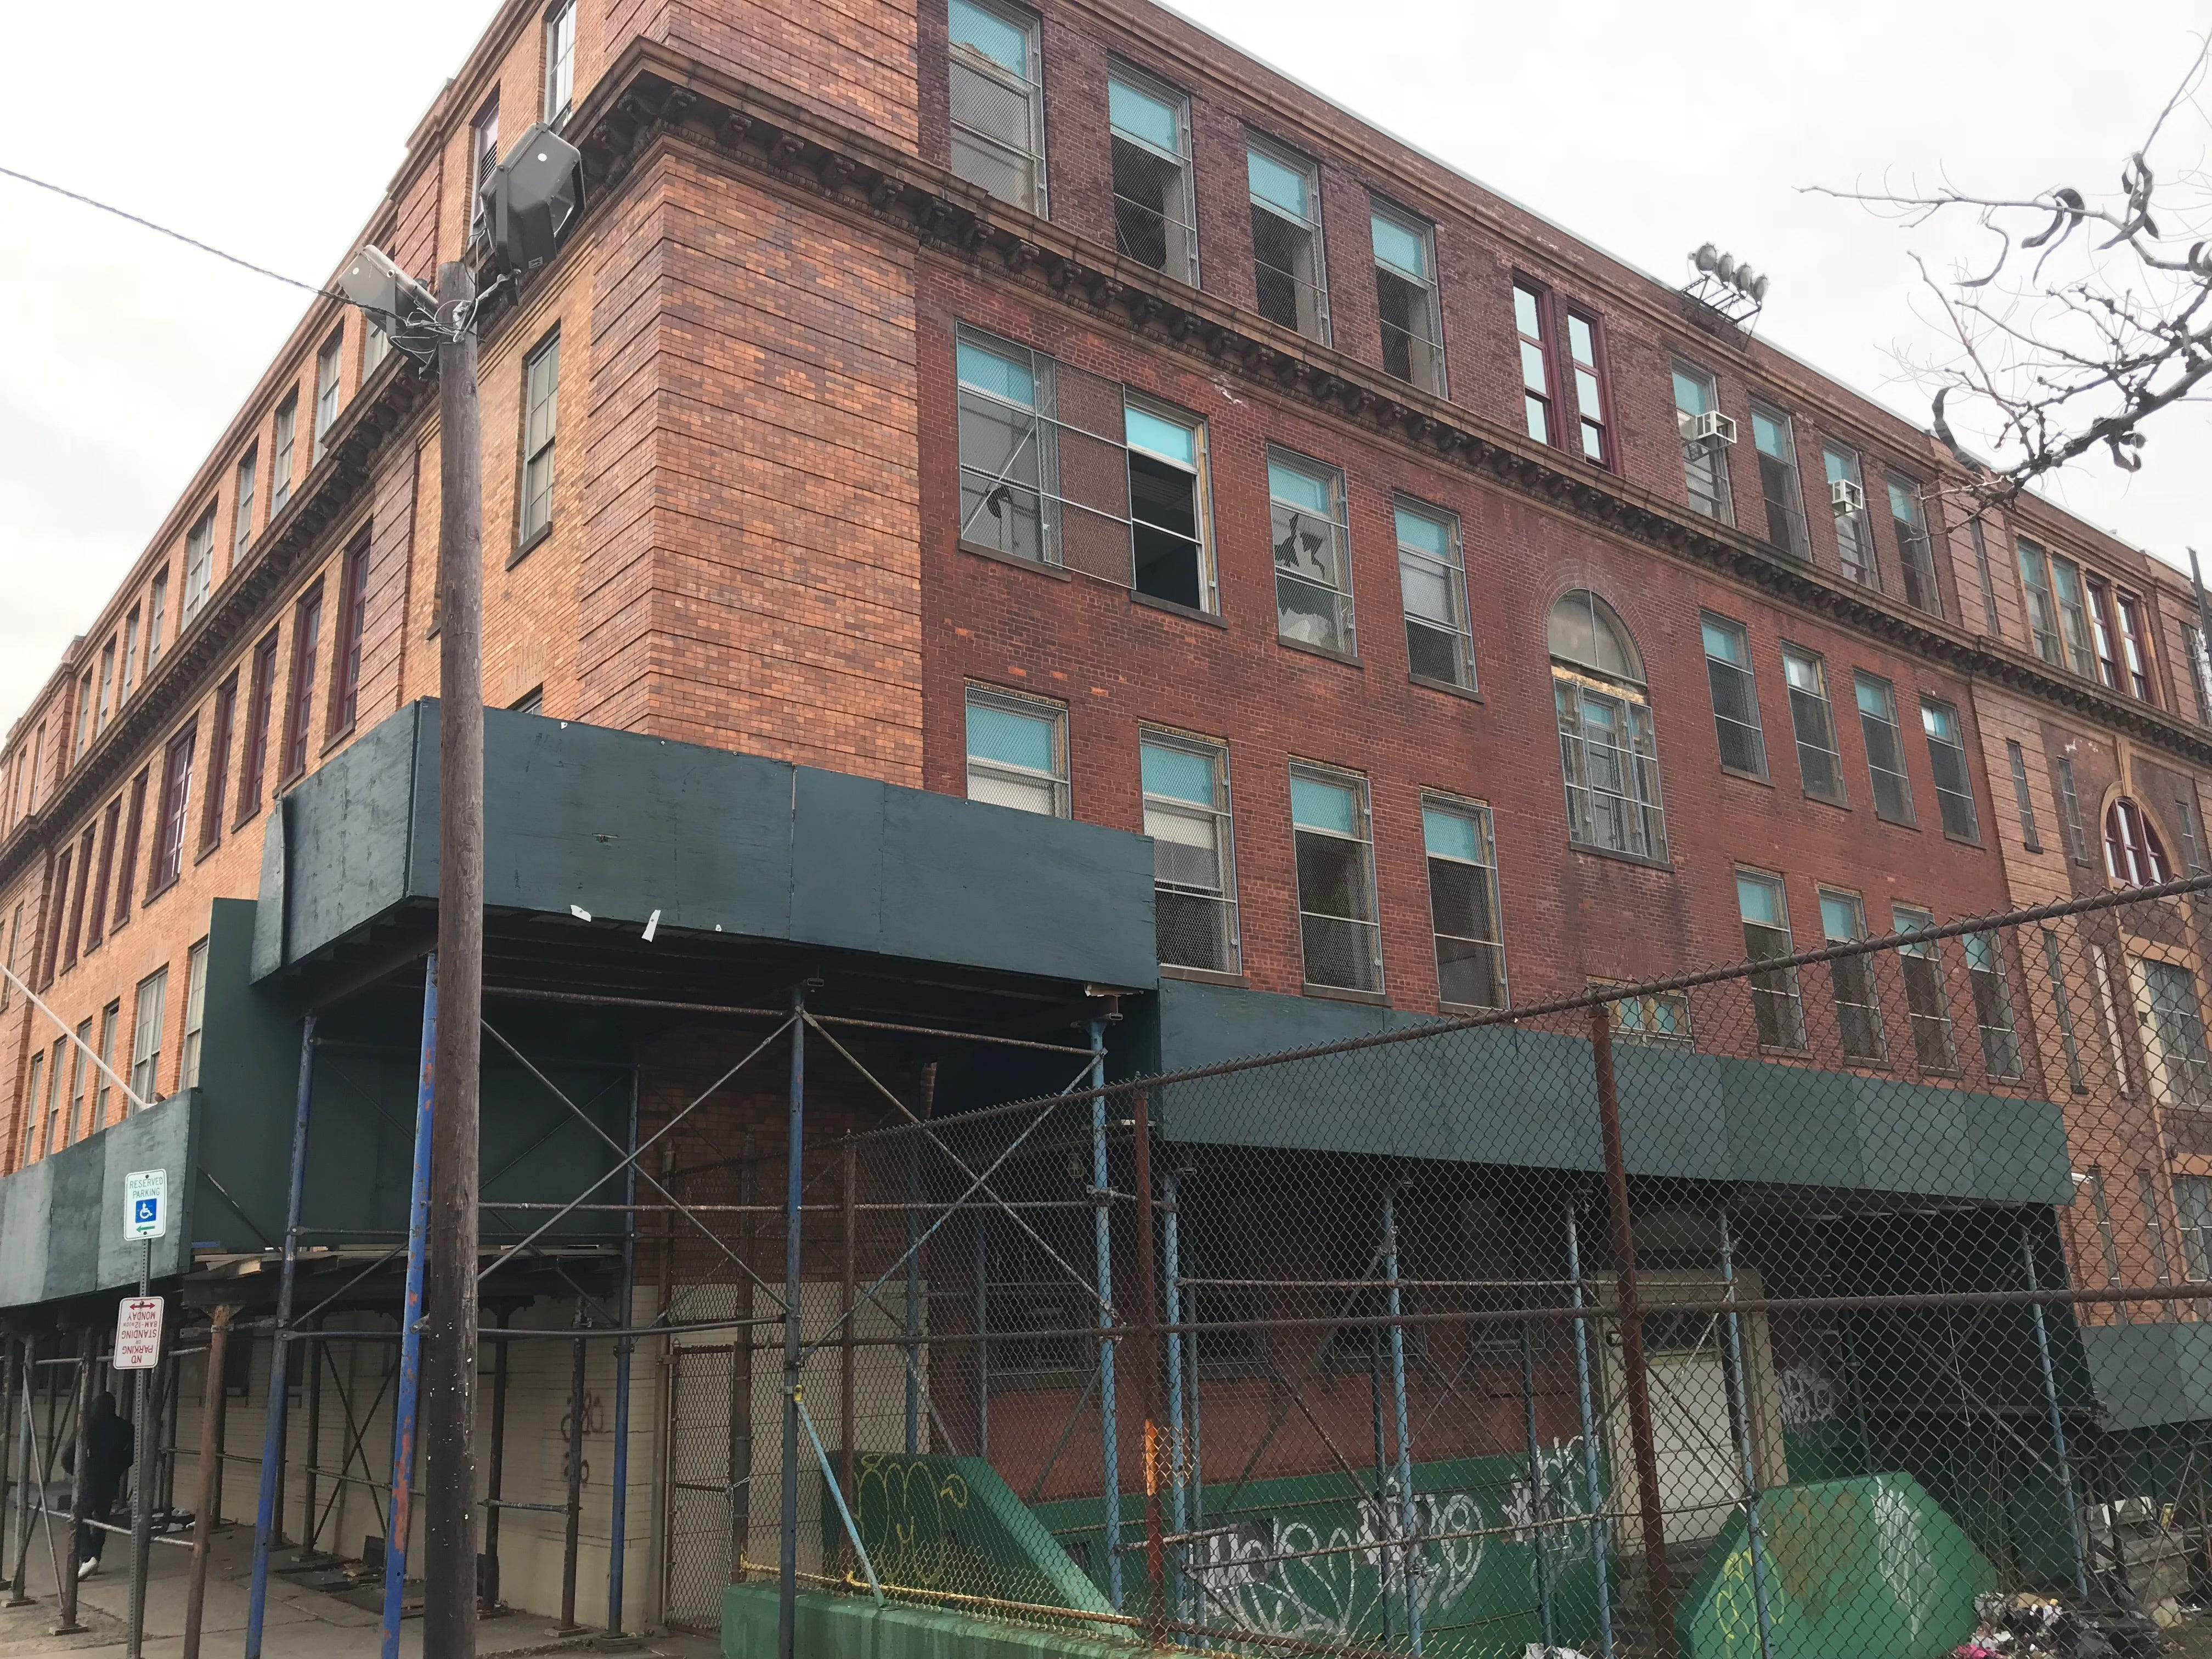 The Morton Street school in Newark remains empty and in need of renovation. A Marion P. Thomas Charter School support group has agreed to purchase it.